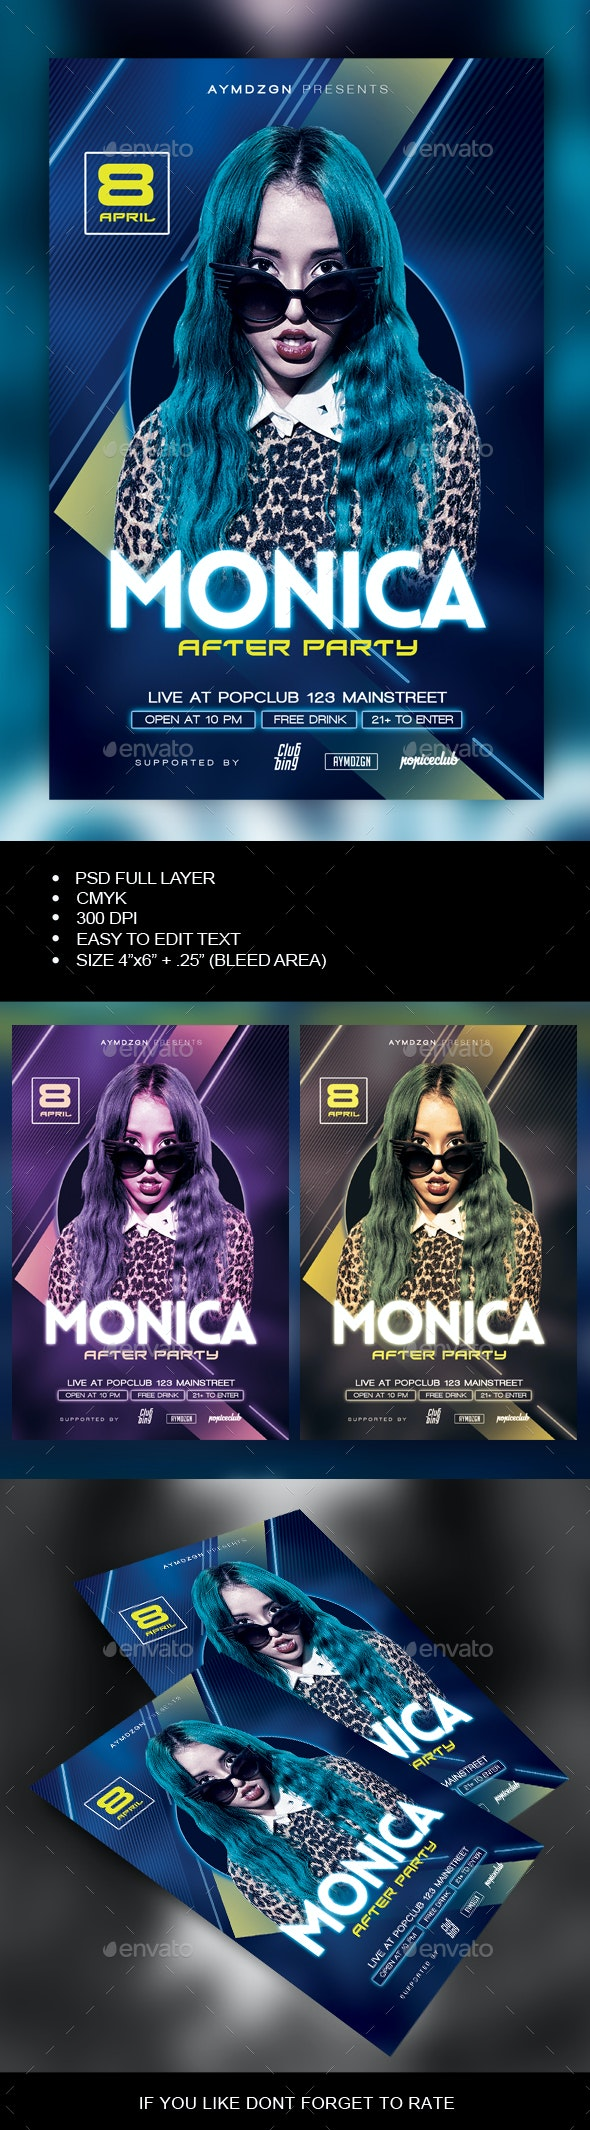 After Party Flyer - Clubs & Parties Events